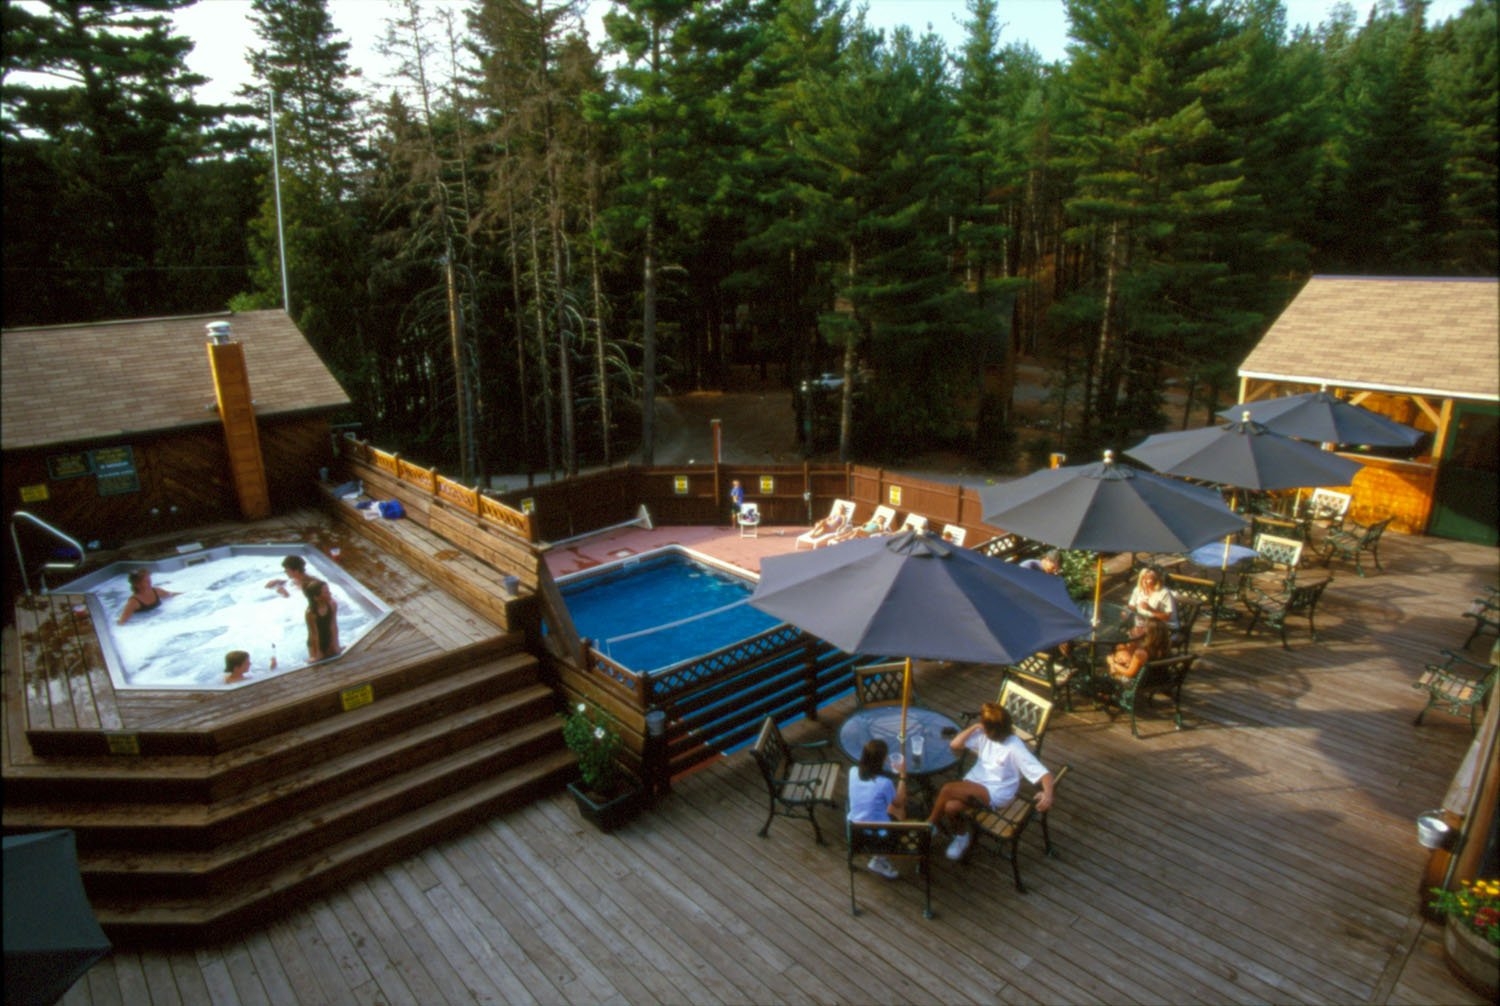 Enjoy the swimming pool in the summer, and the giant hot tub year-round at the Kennebec River Brewery at Northern Outdoors.